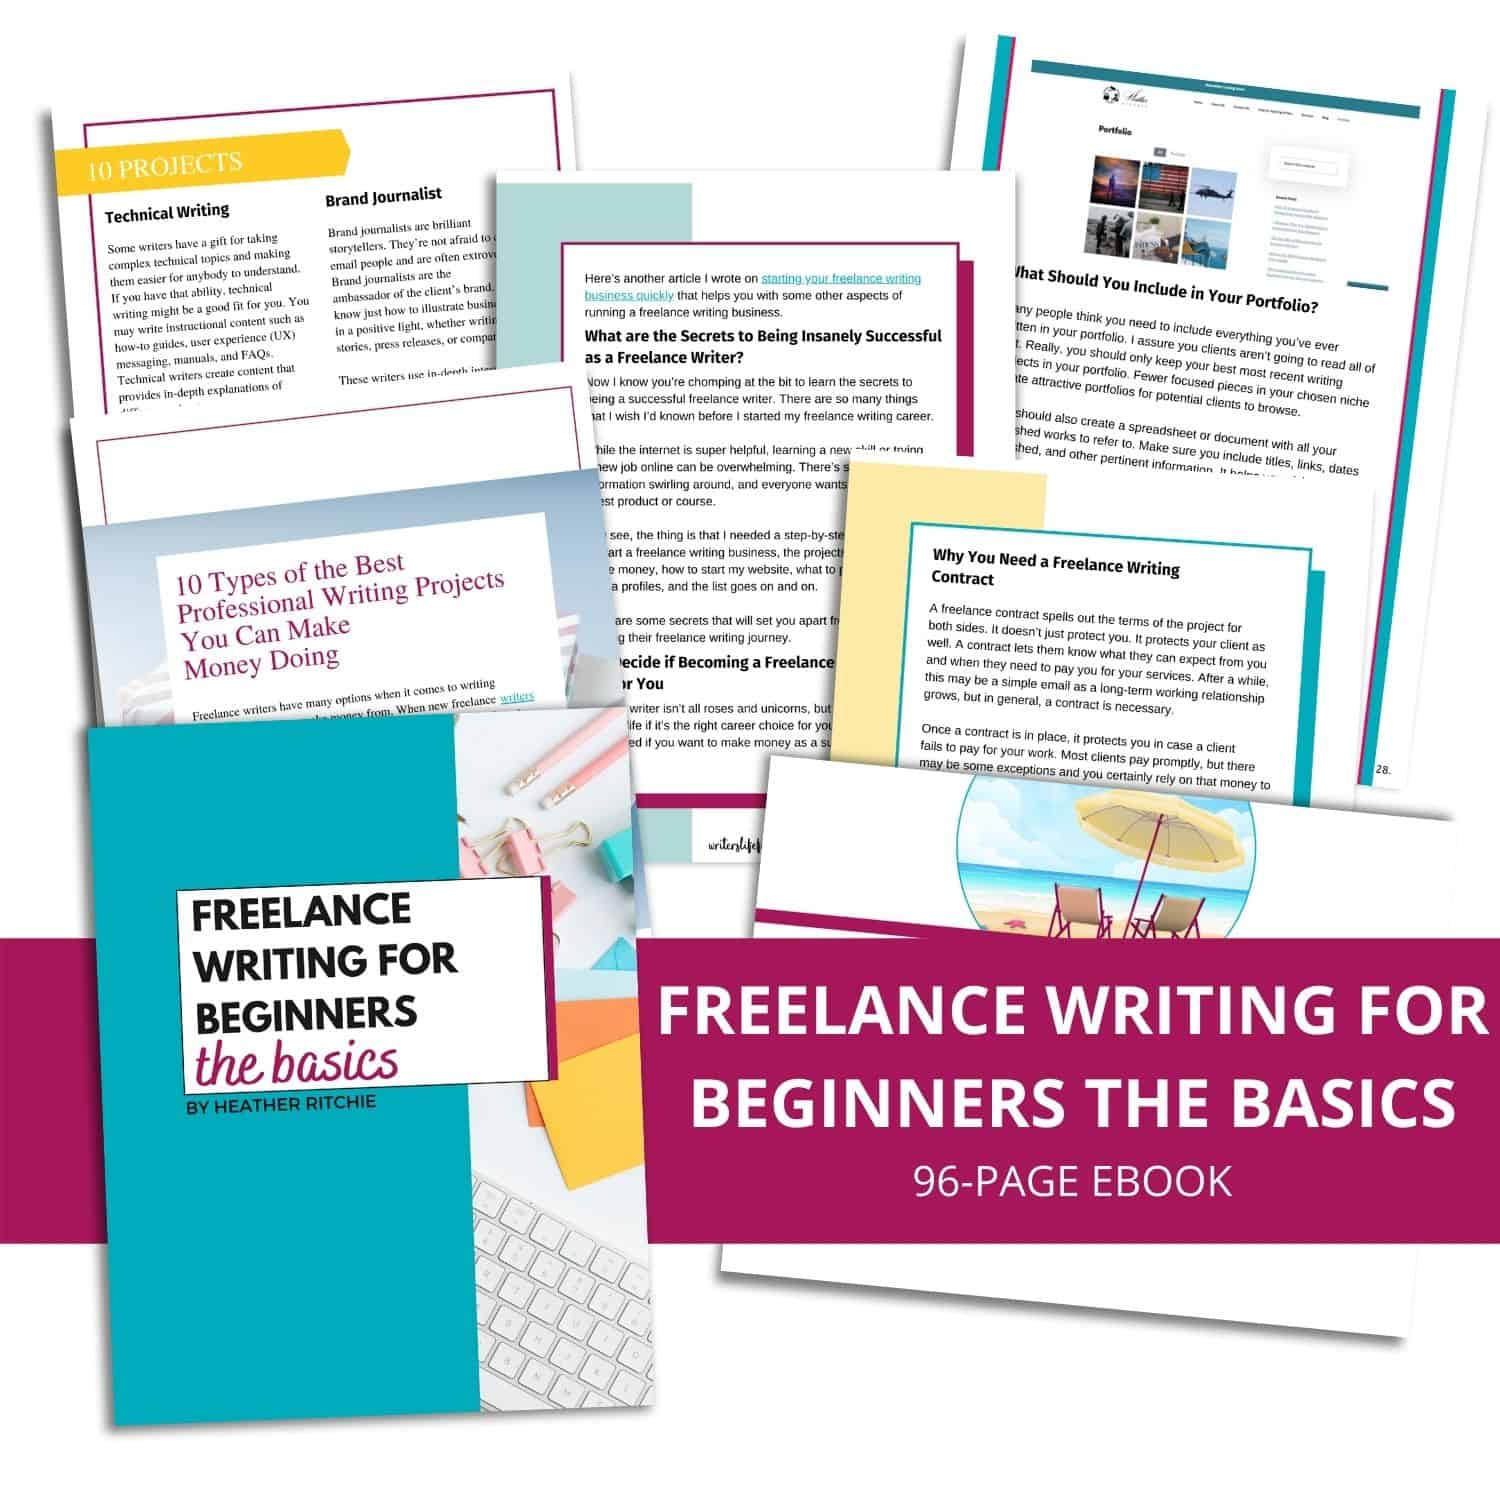 TRIPWIRE FOR FREELANCE WRITERS FOR BEGINNERS THE BASICS